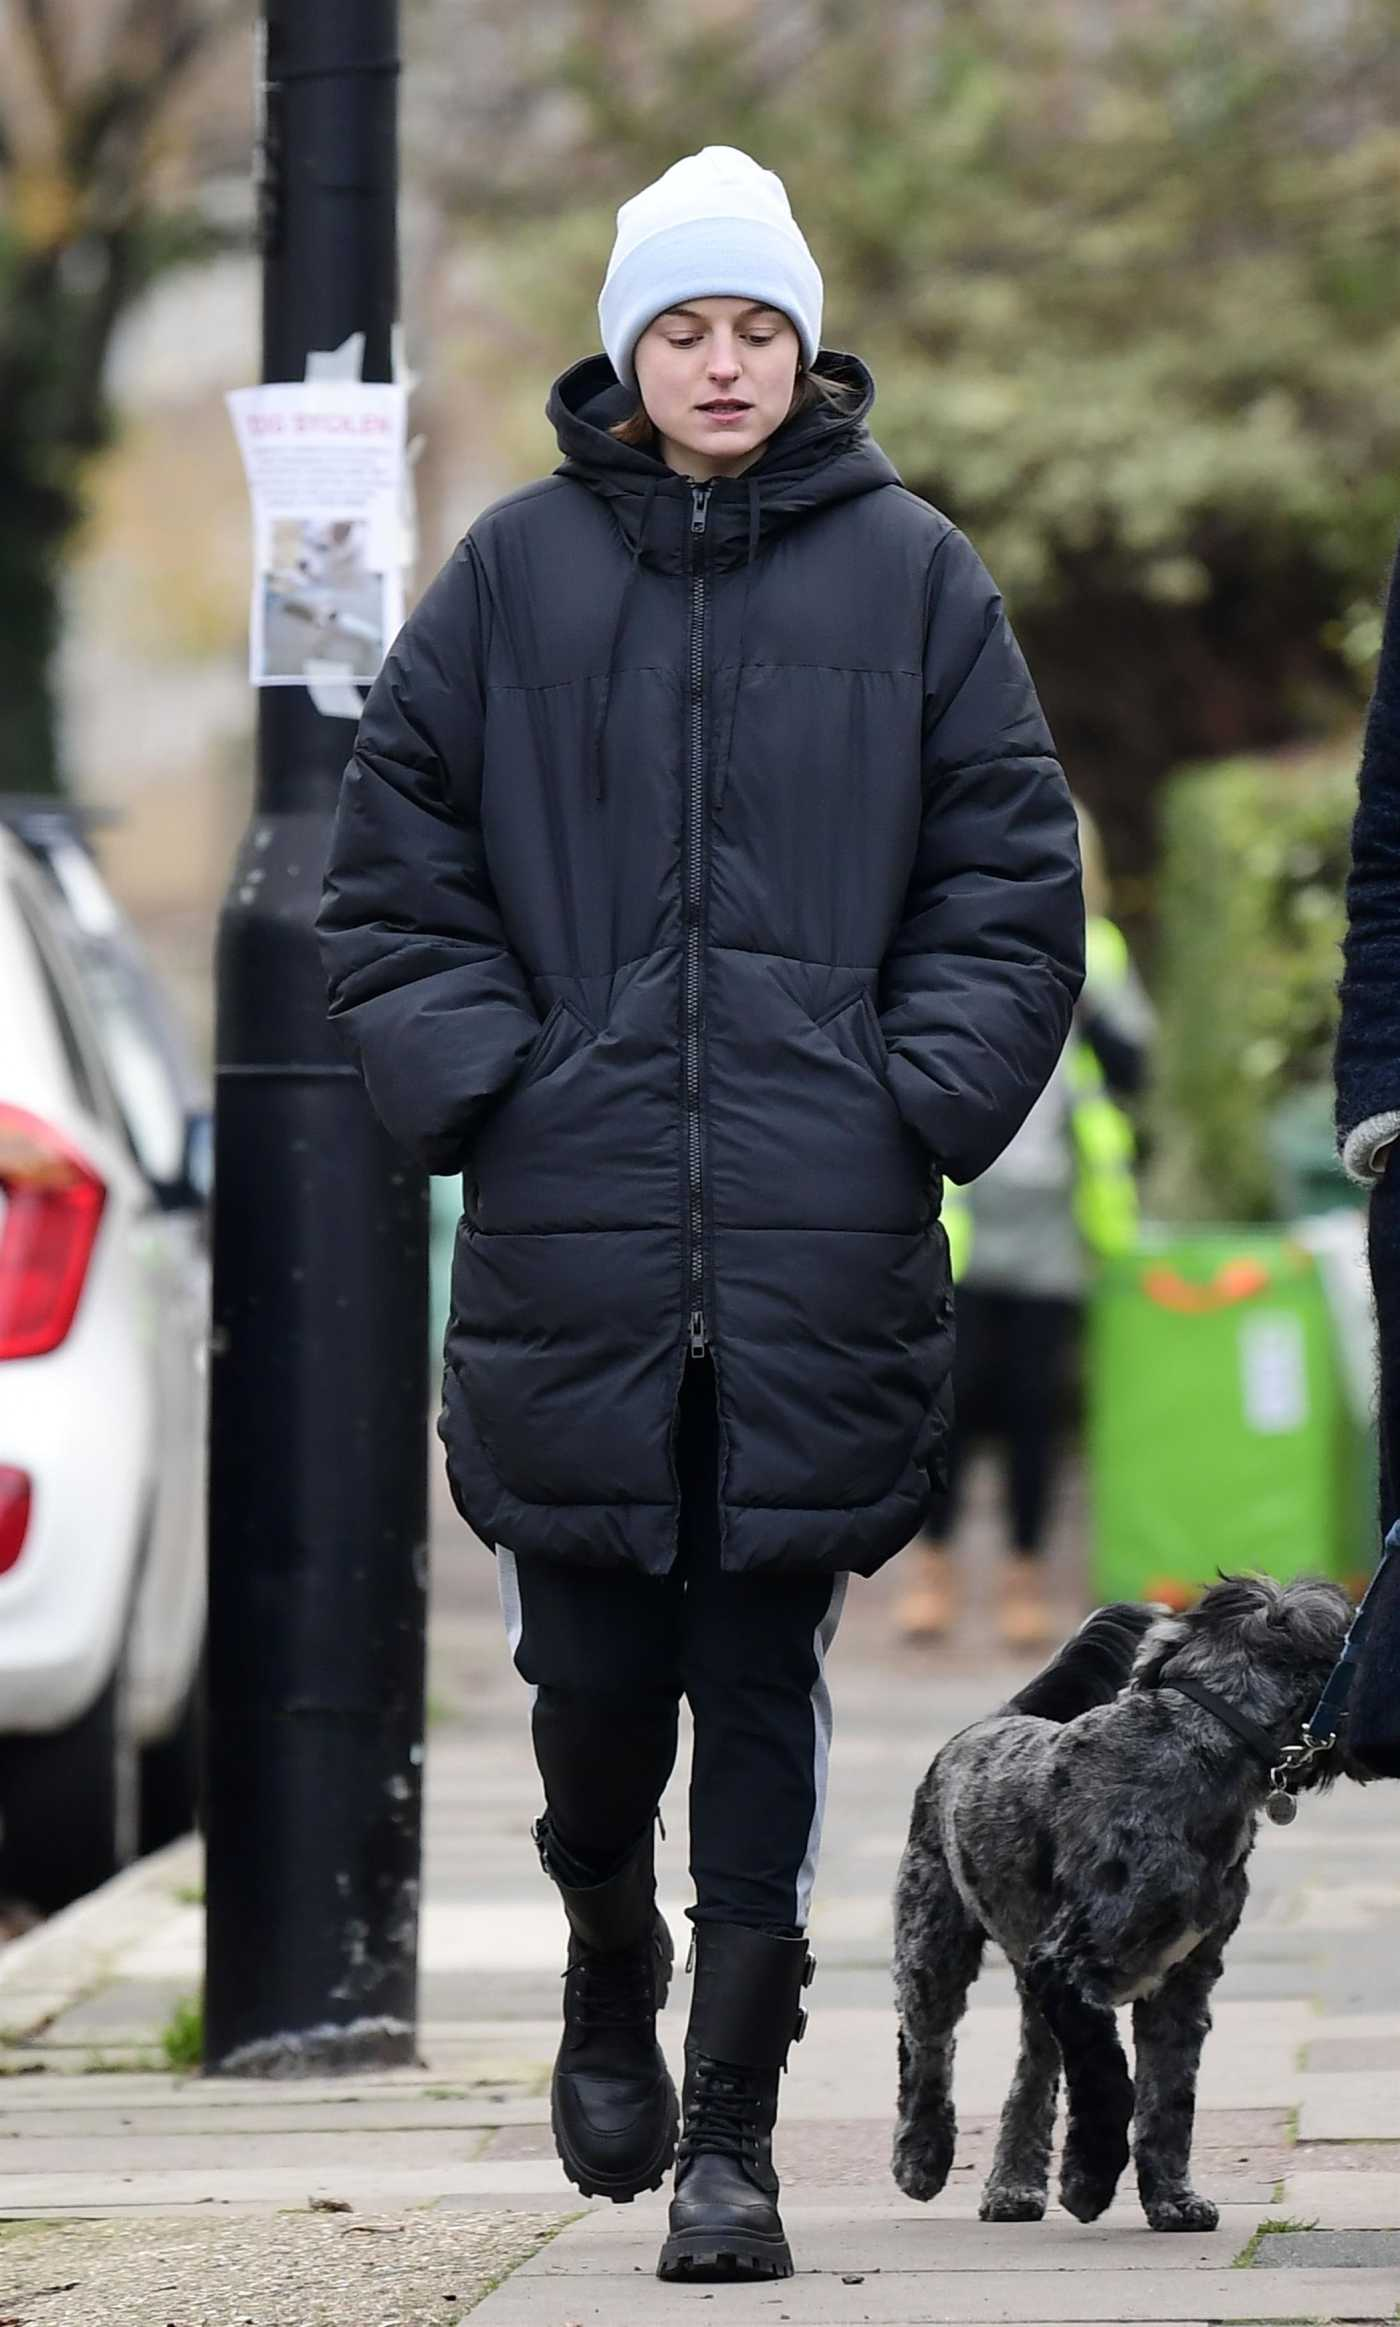 Emma Corrin in a White Beanie Hat Enjoys a Stroll in Belsize Park in North London 11/26/2020